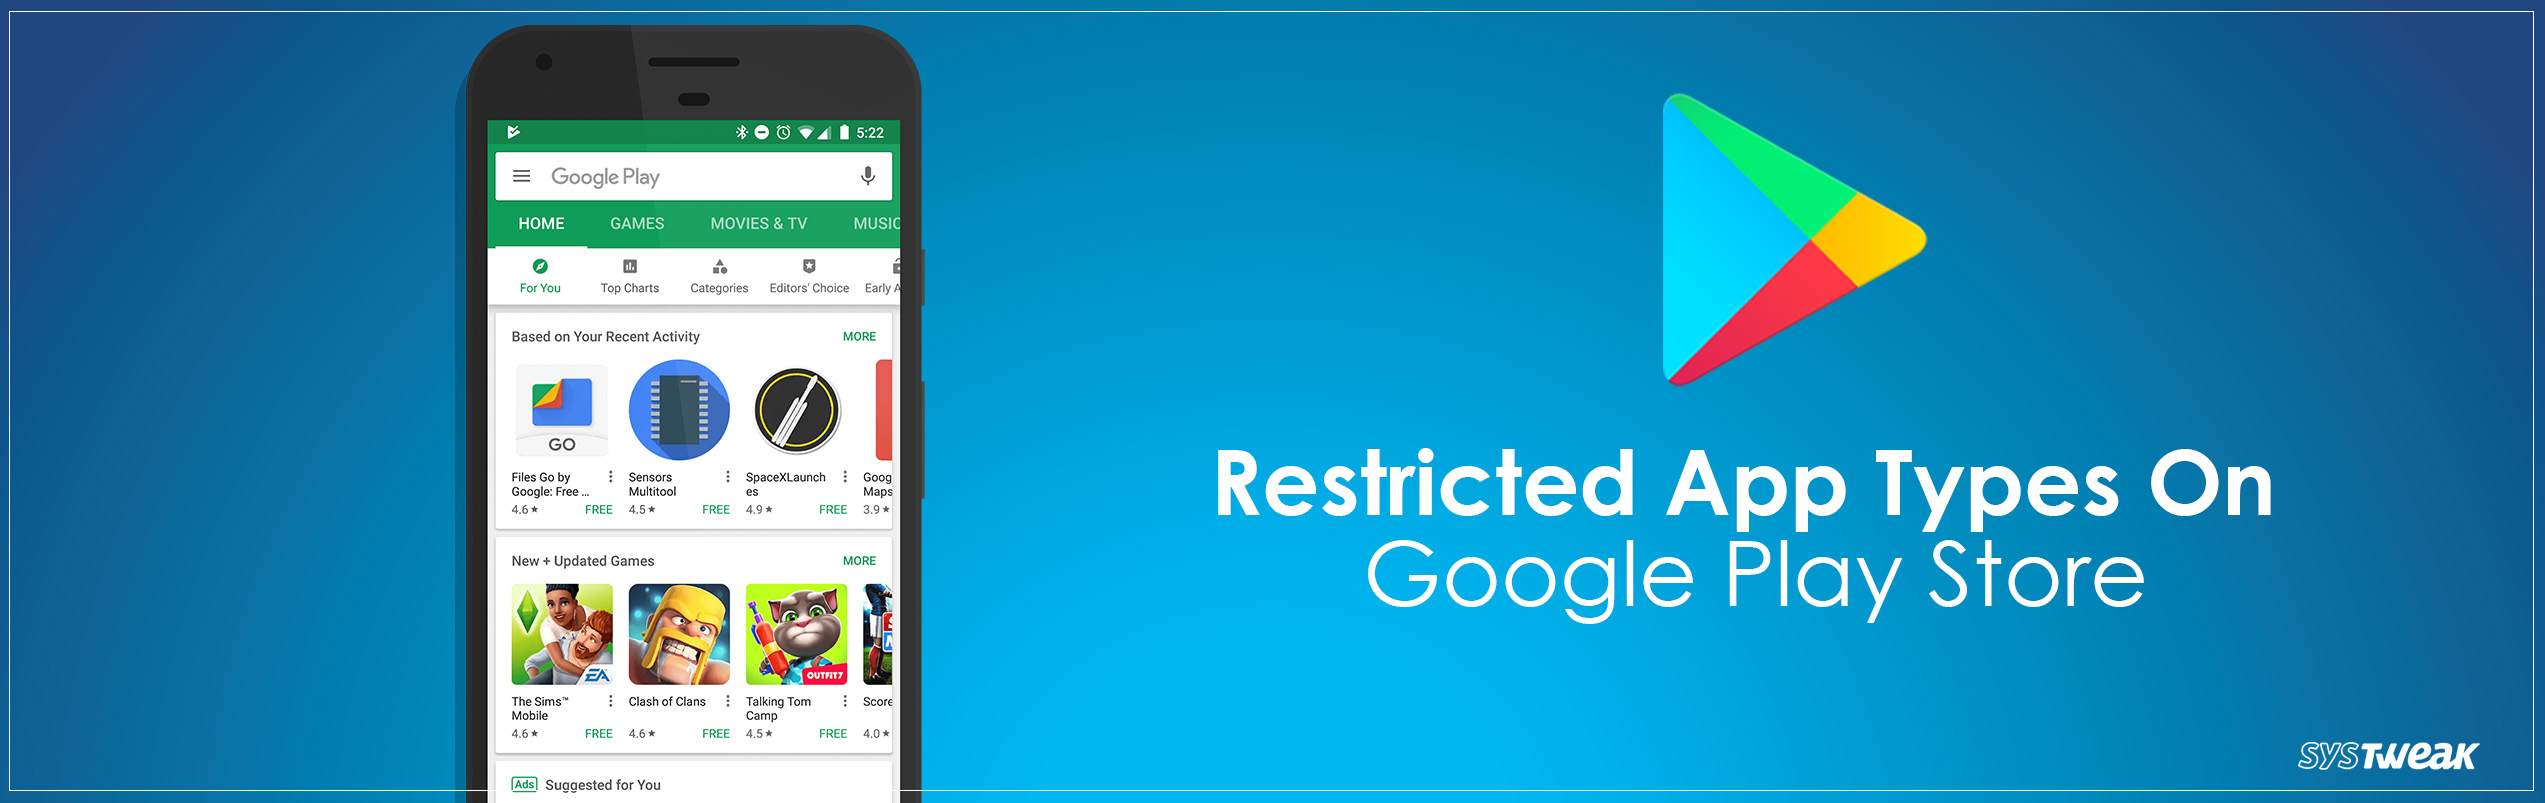 11 Banned App Categories On Google Play Store